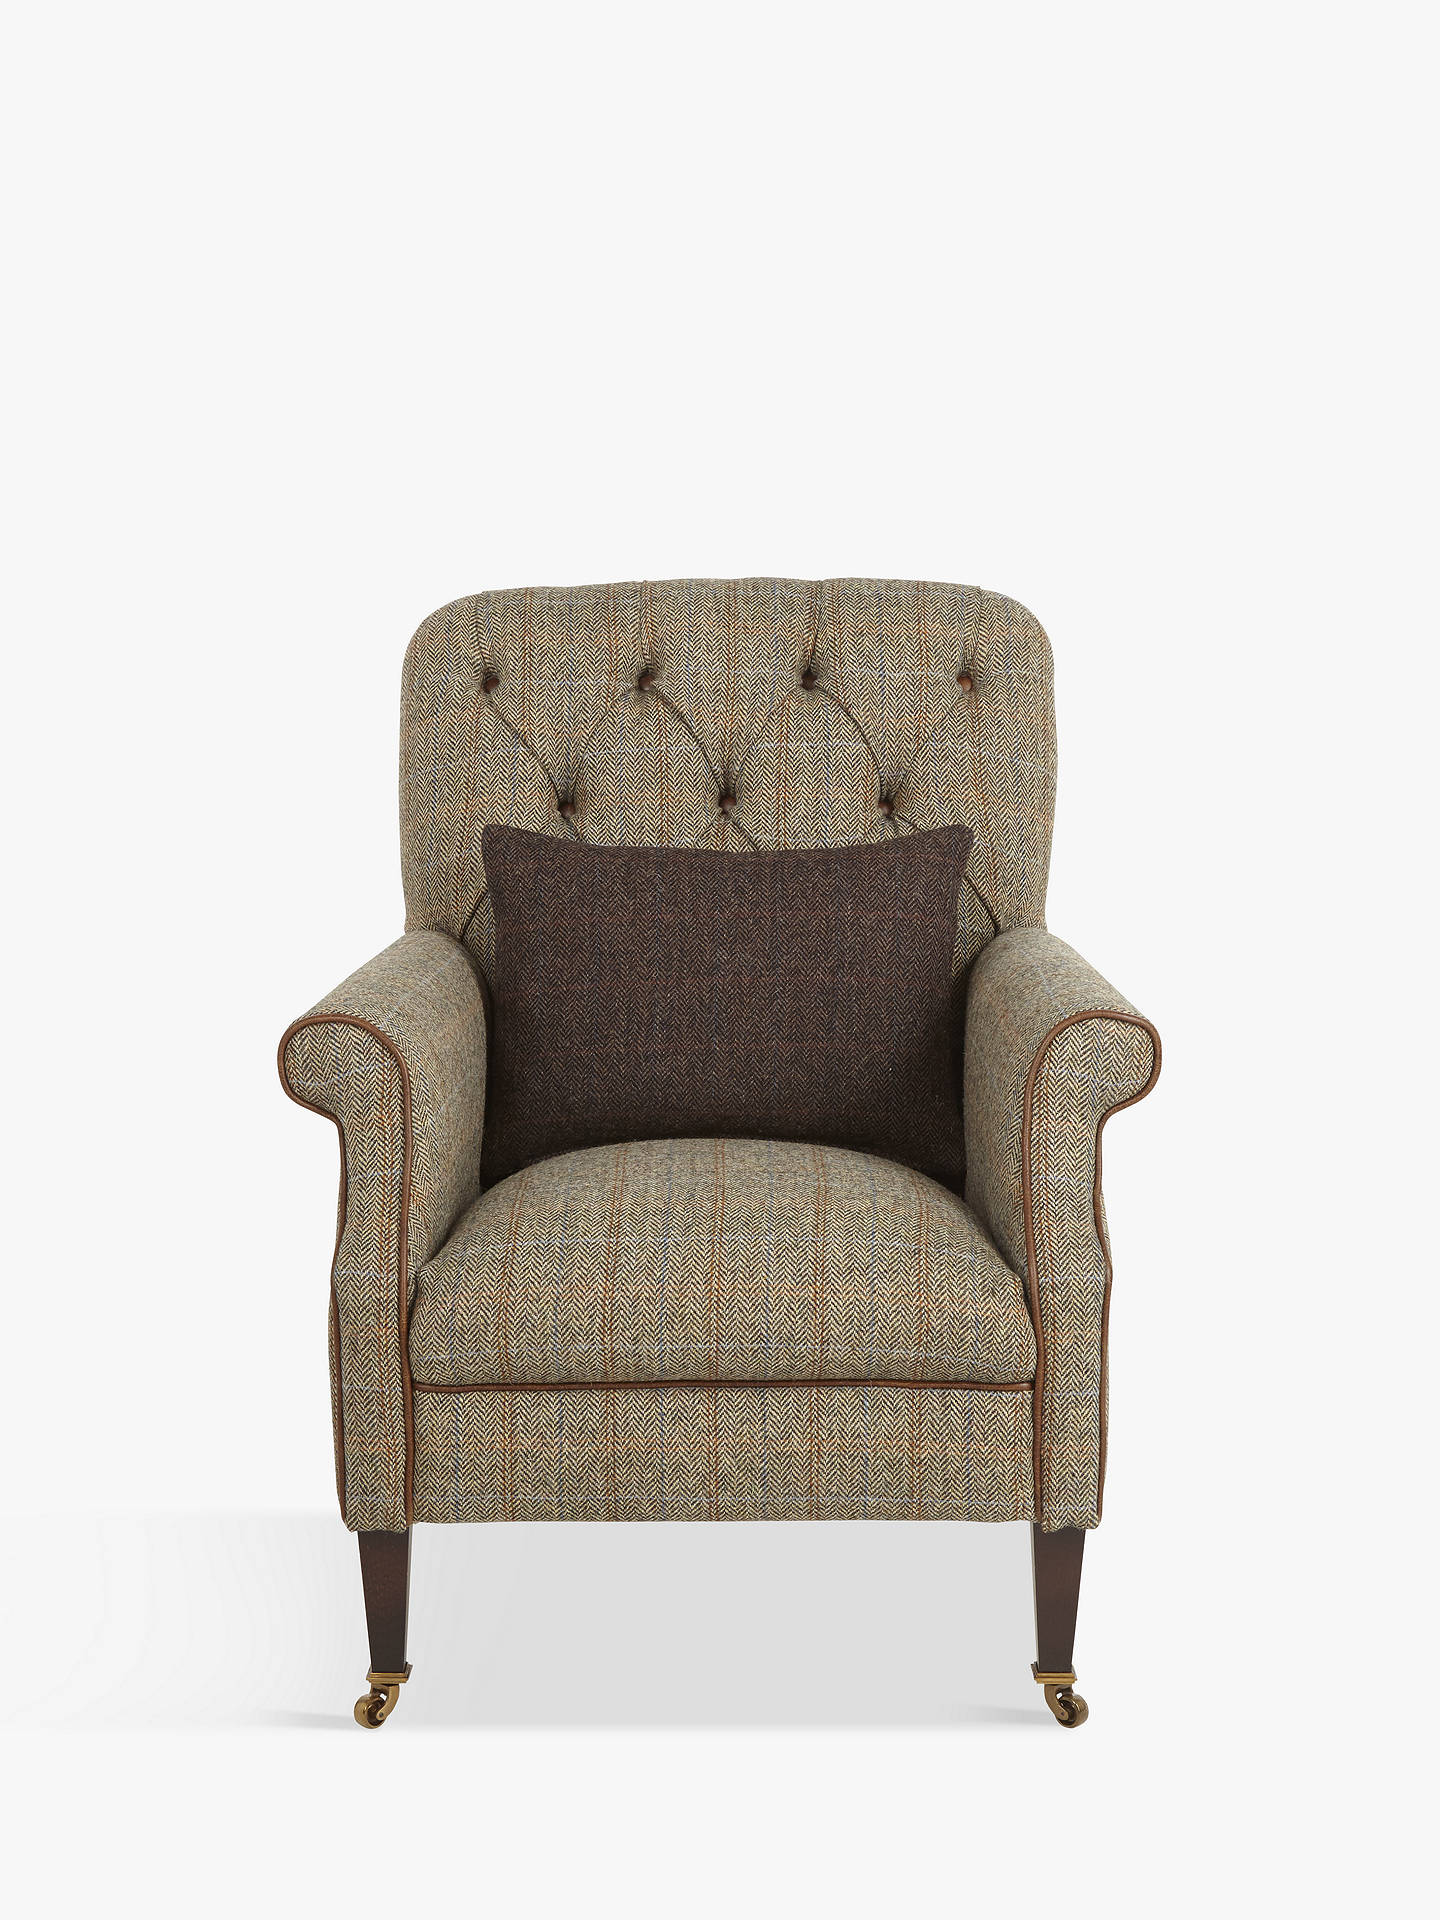 Admirable Tetrad Flynn Armchair With Brompton Leather Trim Bracken Ncnpc Chair Design For Home Ncnpcorg